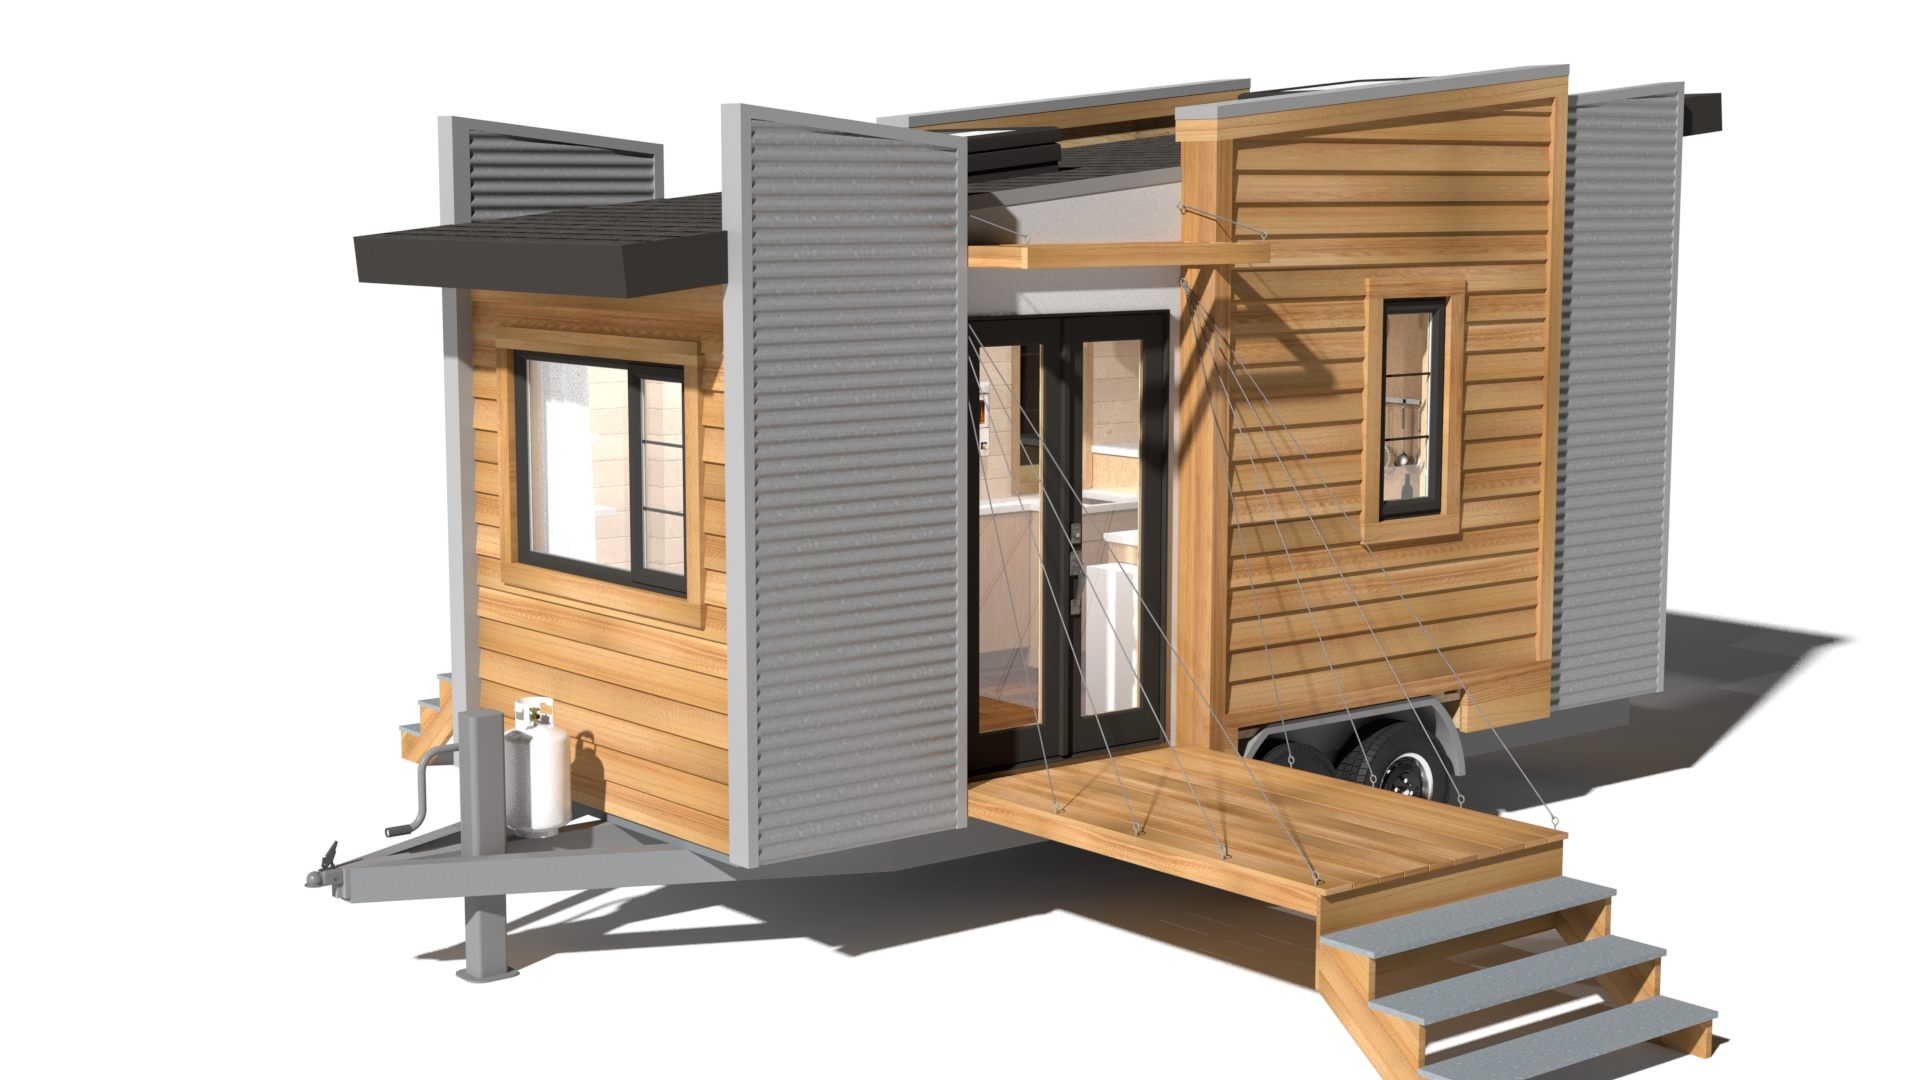 Home Build Plans Dragonfly Tiny House Tiny House France